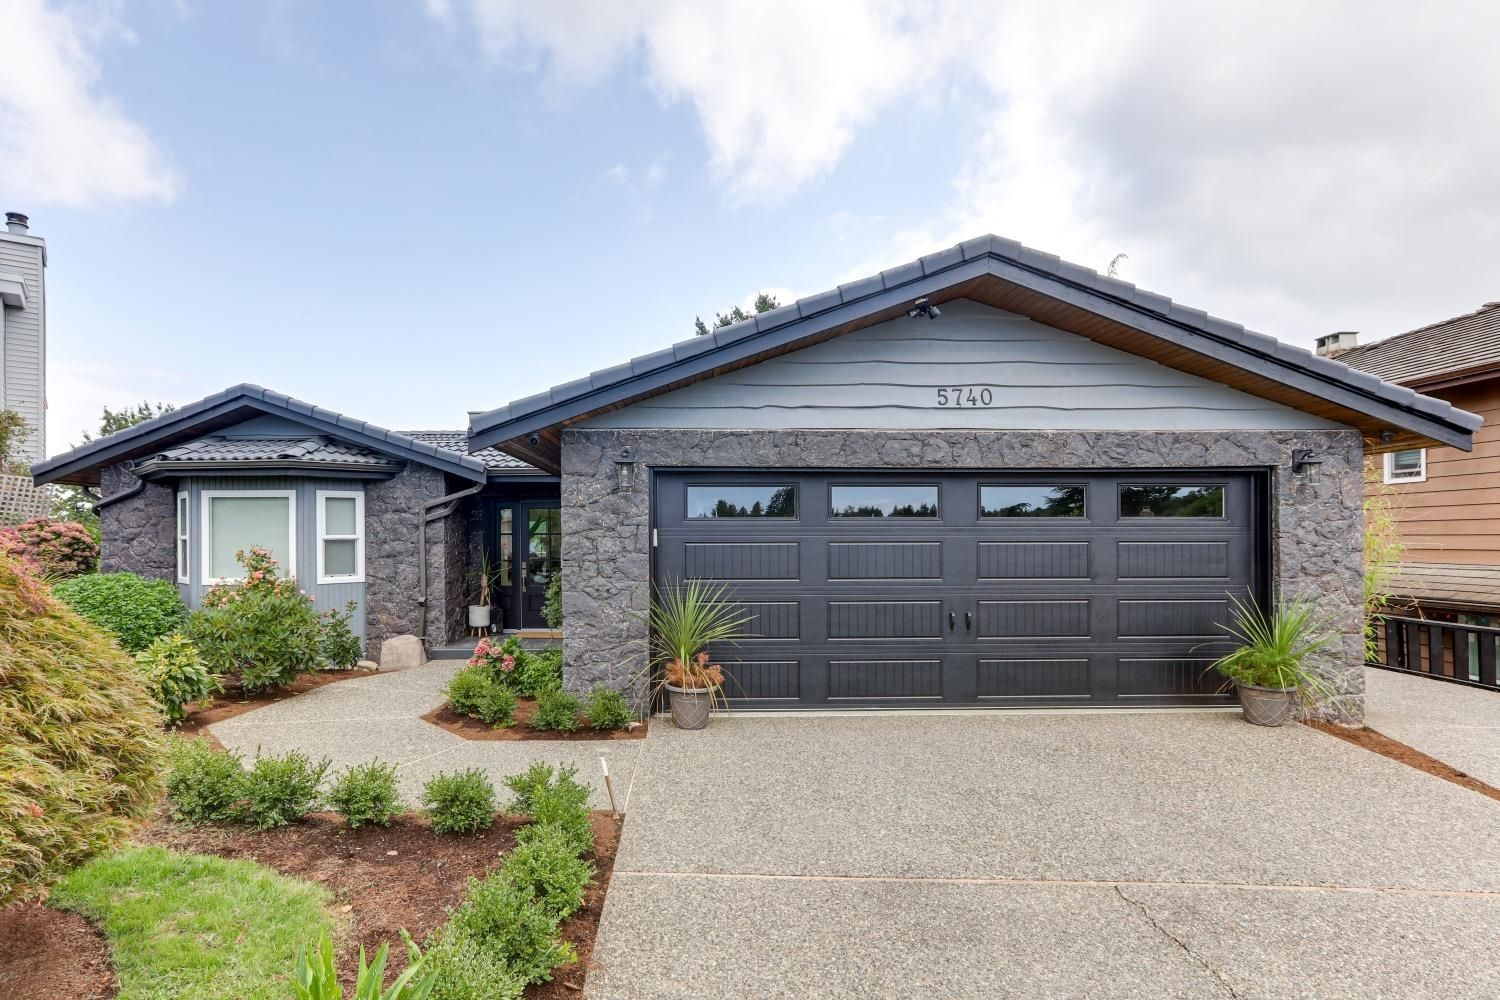 """Main Photo: 5740 GOLDENROD Crescent in Delta: Tsawwassen East House for sale in """"FOREST BY THE BAY"""" (Tsawwassen)  : MLS®# R2609907"""